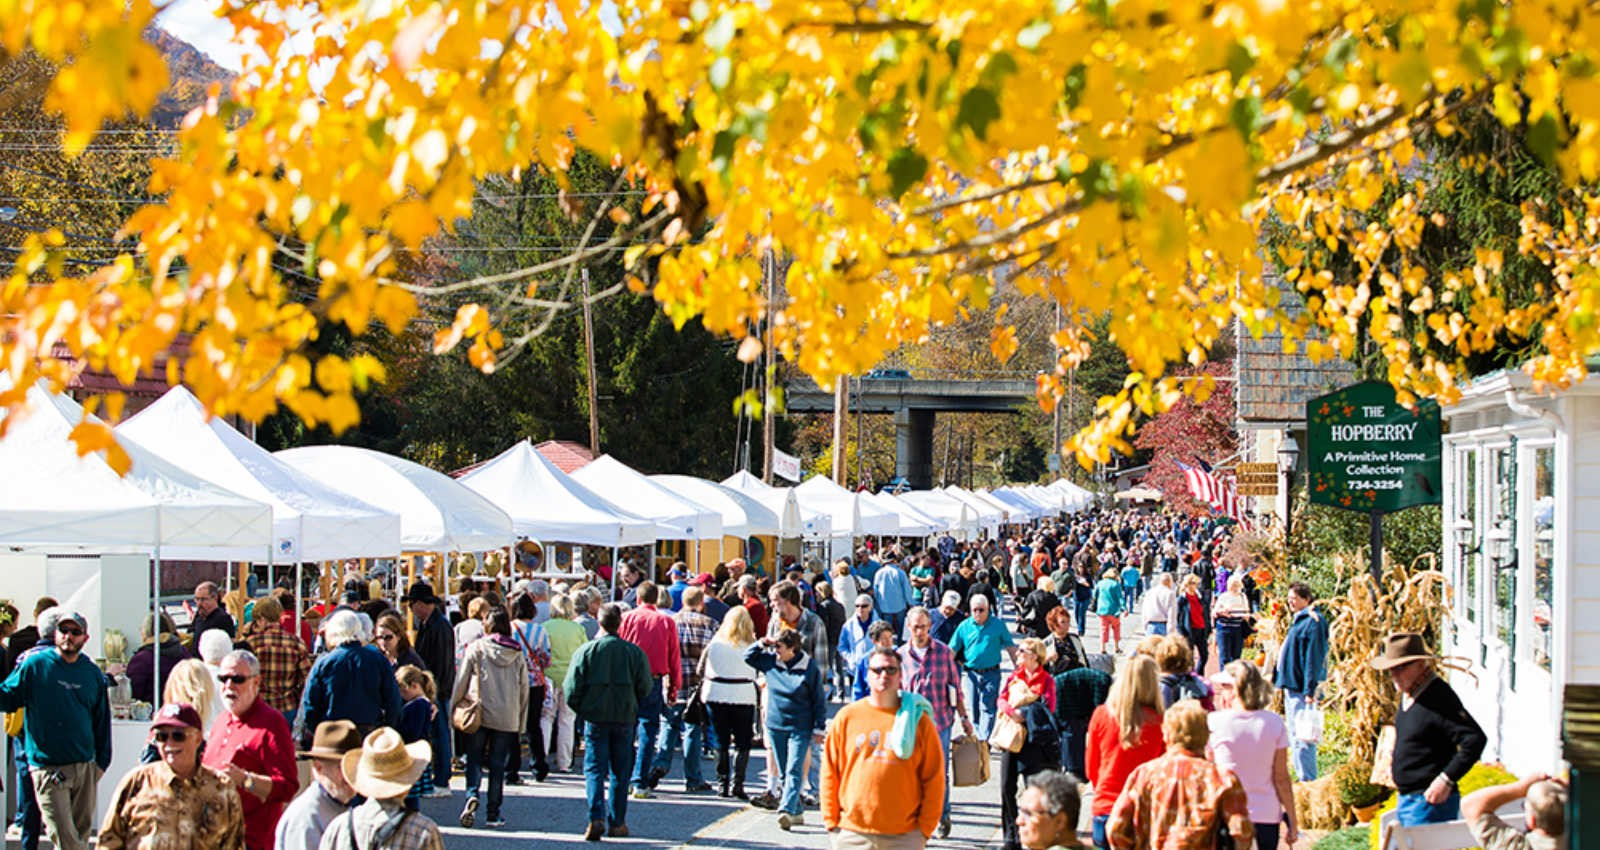 The 13th Annual WNC Pottery Festival